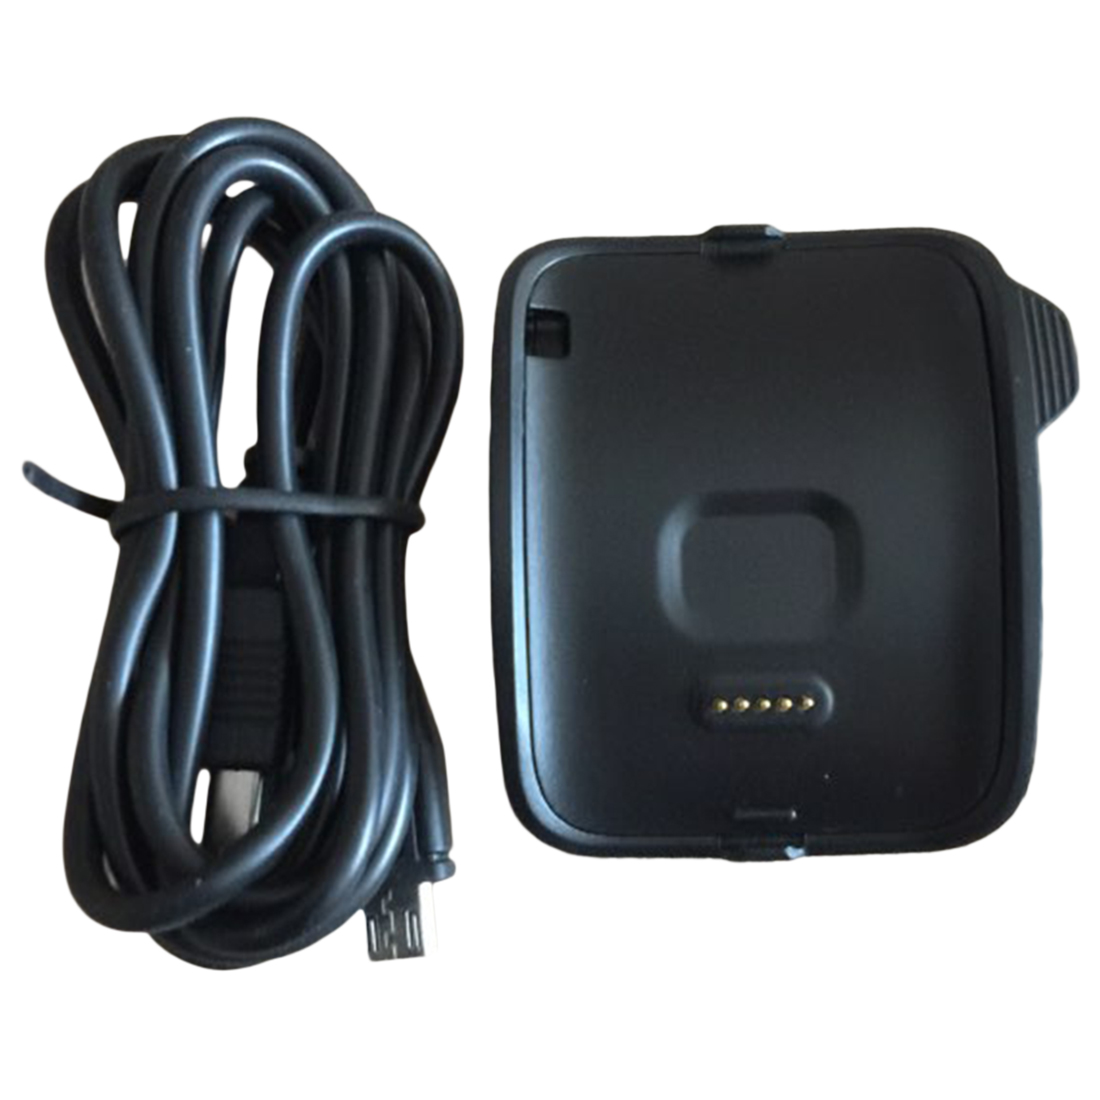 Centechia New Arrival quick charging with usb cable, Charging Dock Charger Cradle for Samsung Galaxy Gear S Smart Watch SM-R750